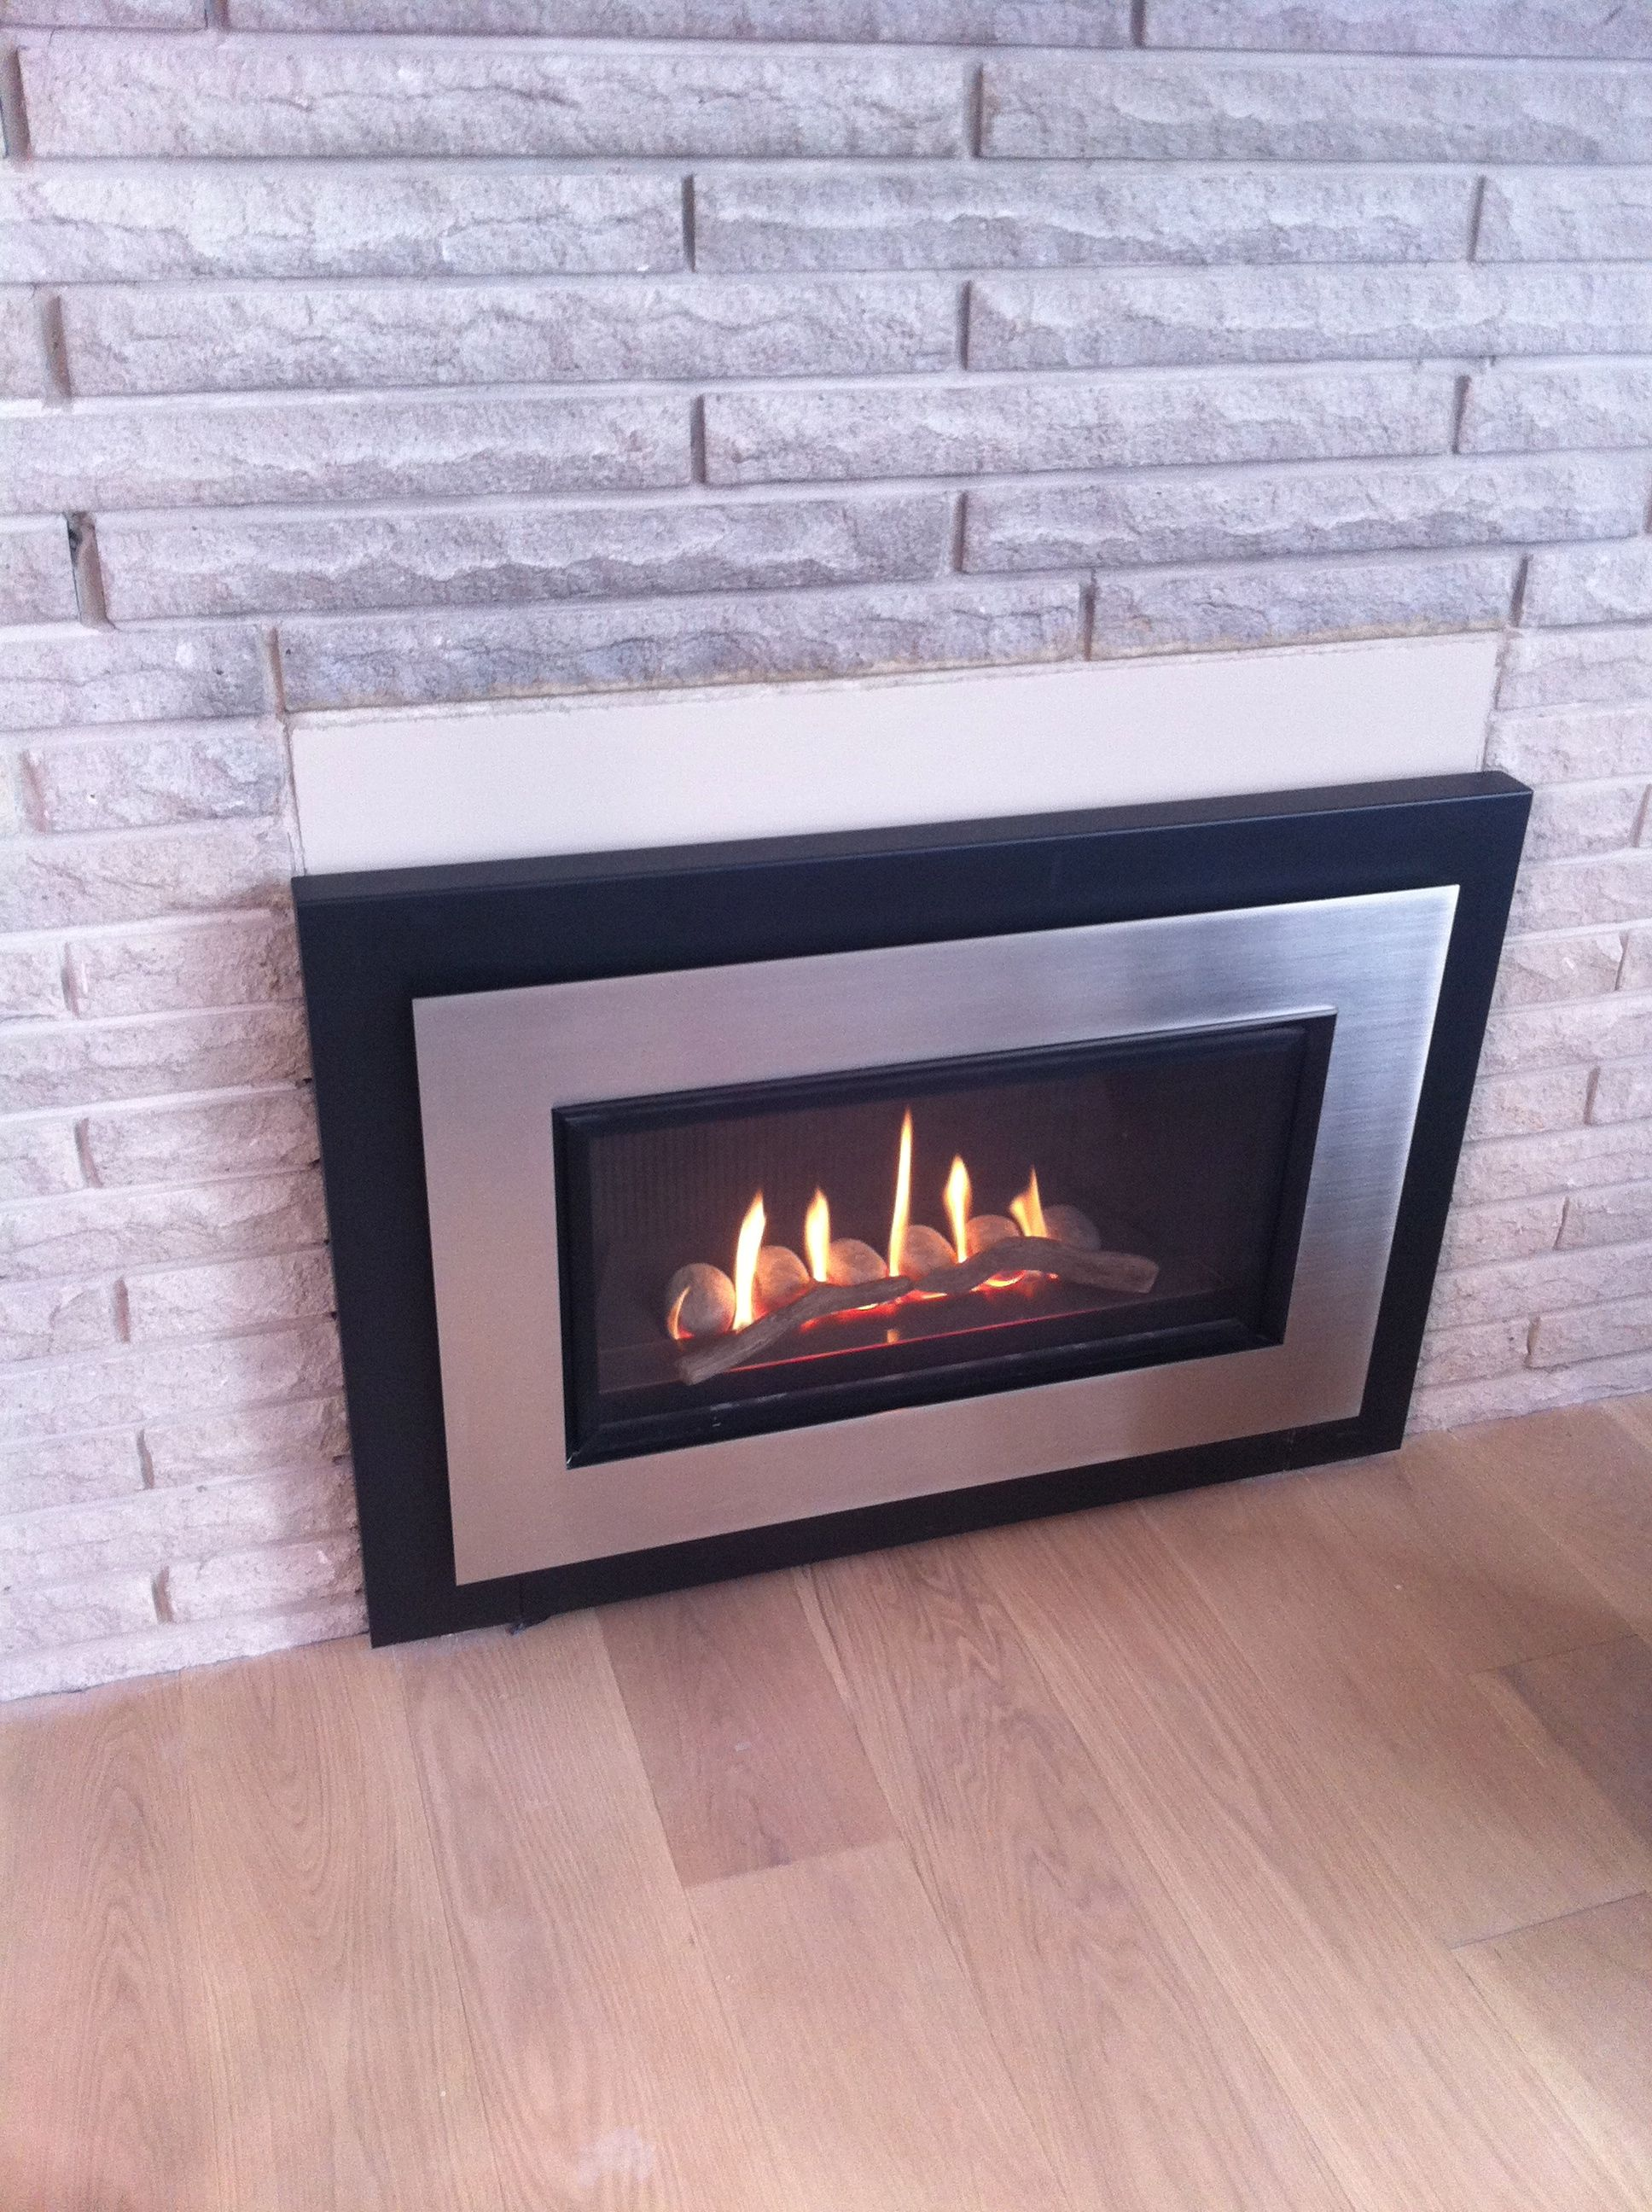 Gas Fireplace Store Valor Fireplaces Gas Fireplace Insert John Diana